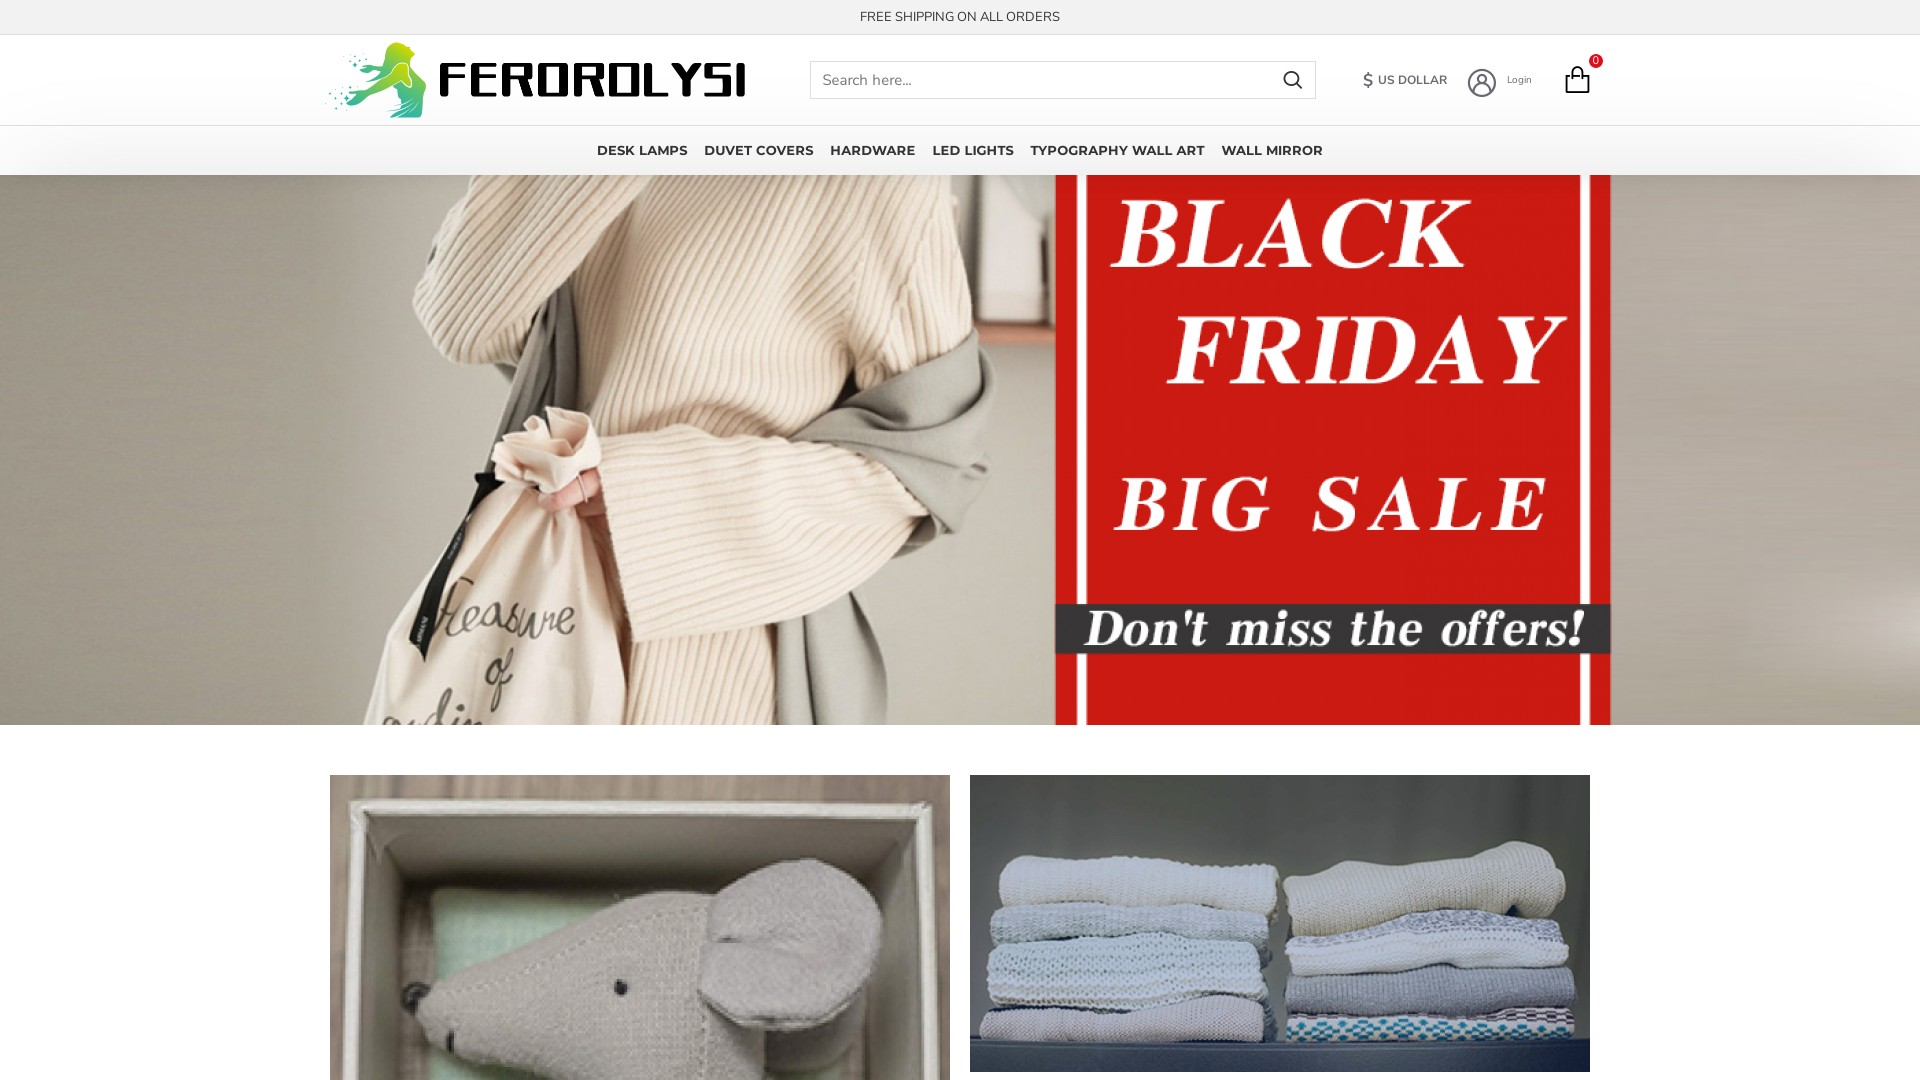 Is Ferdrolysi a Scam? Review of the Online Store